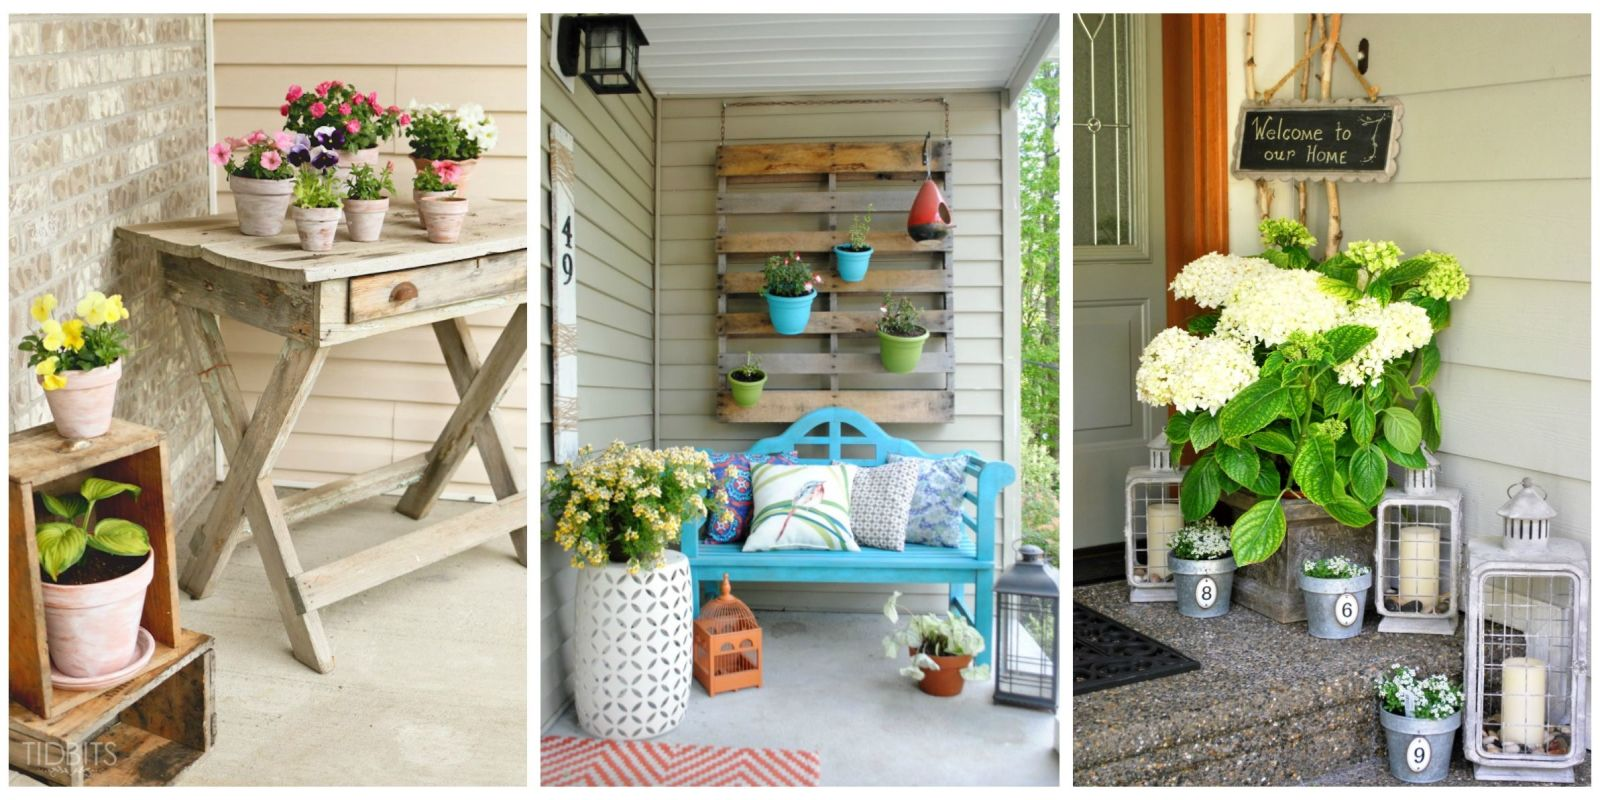 Diy porch d cor diy outdoor d cor - Outdoor decorating ideas ...